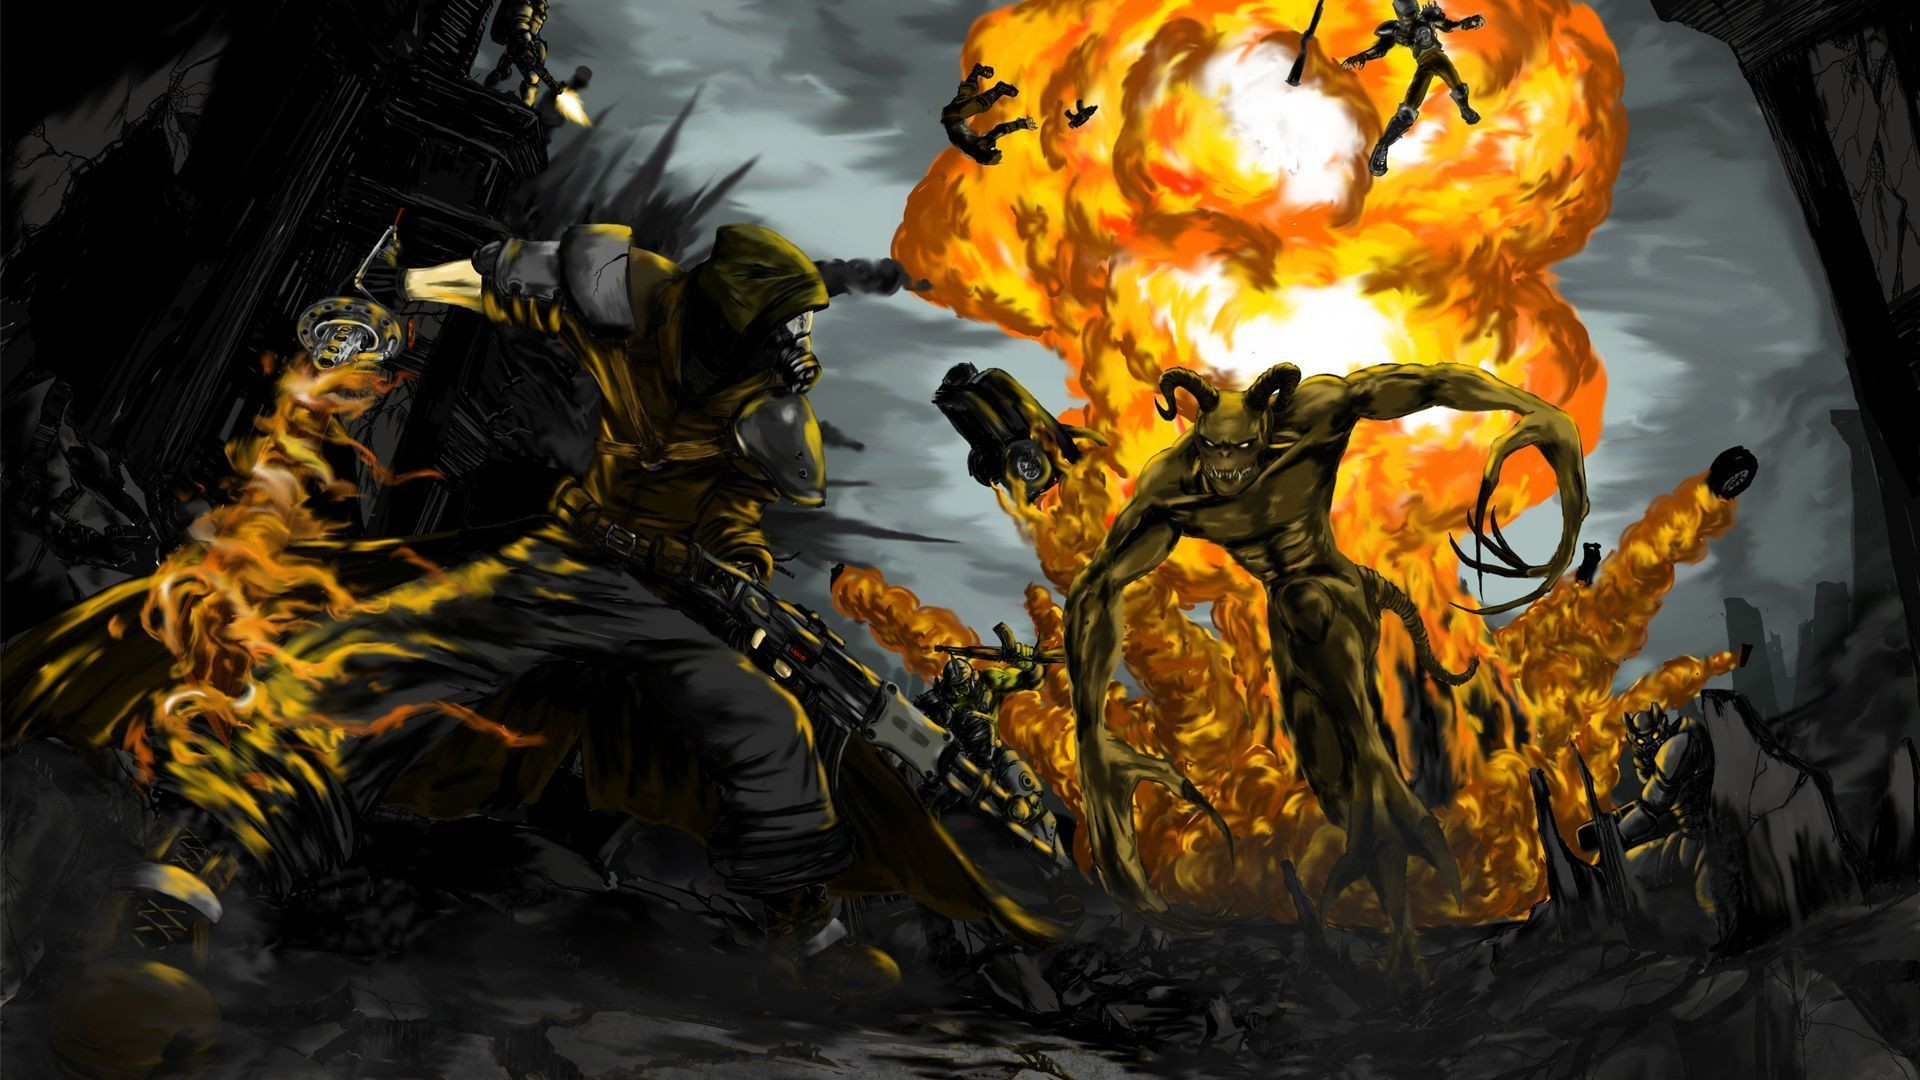 35 Fallout 3 HD Wallpapers